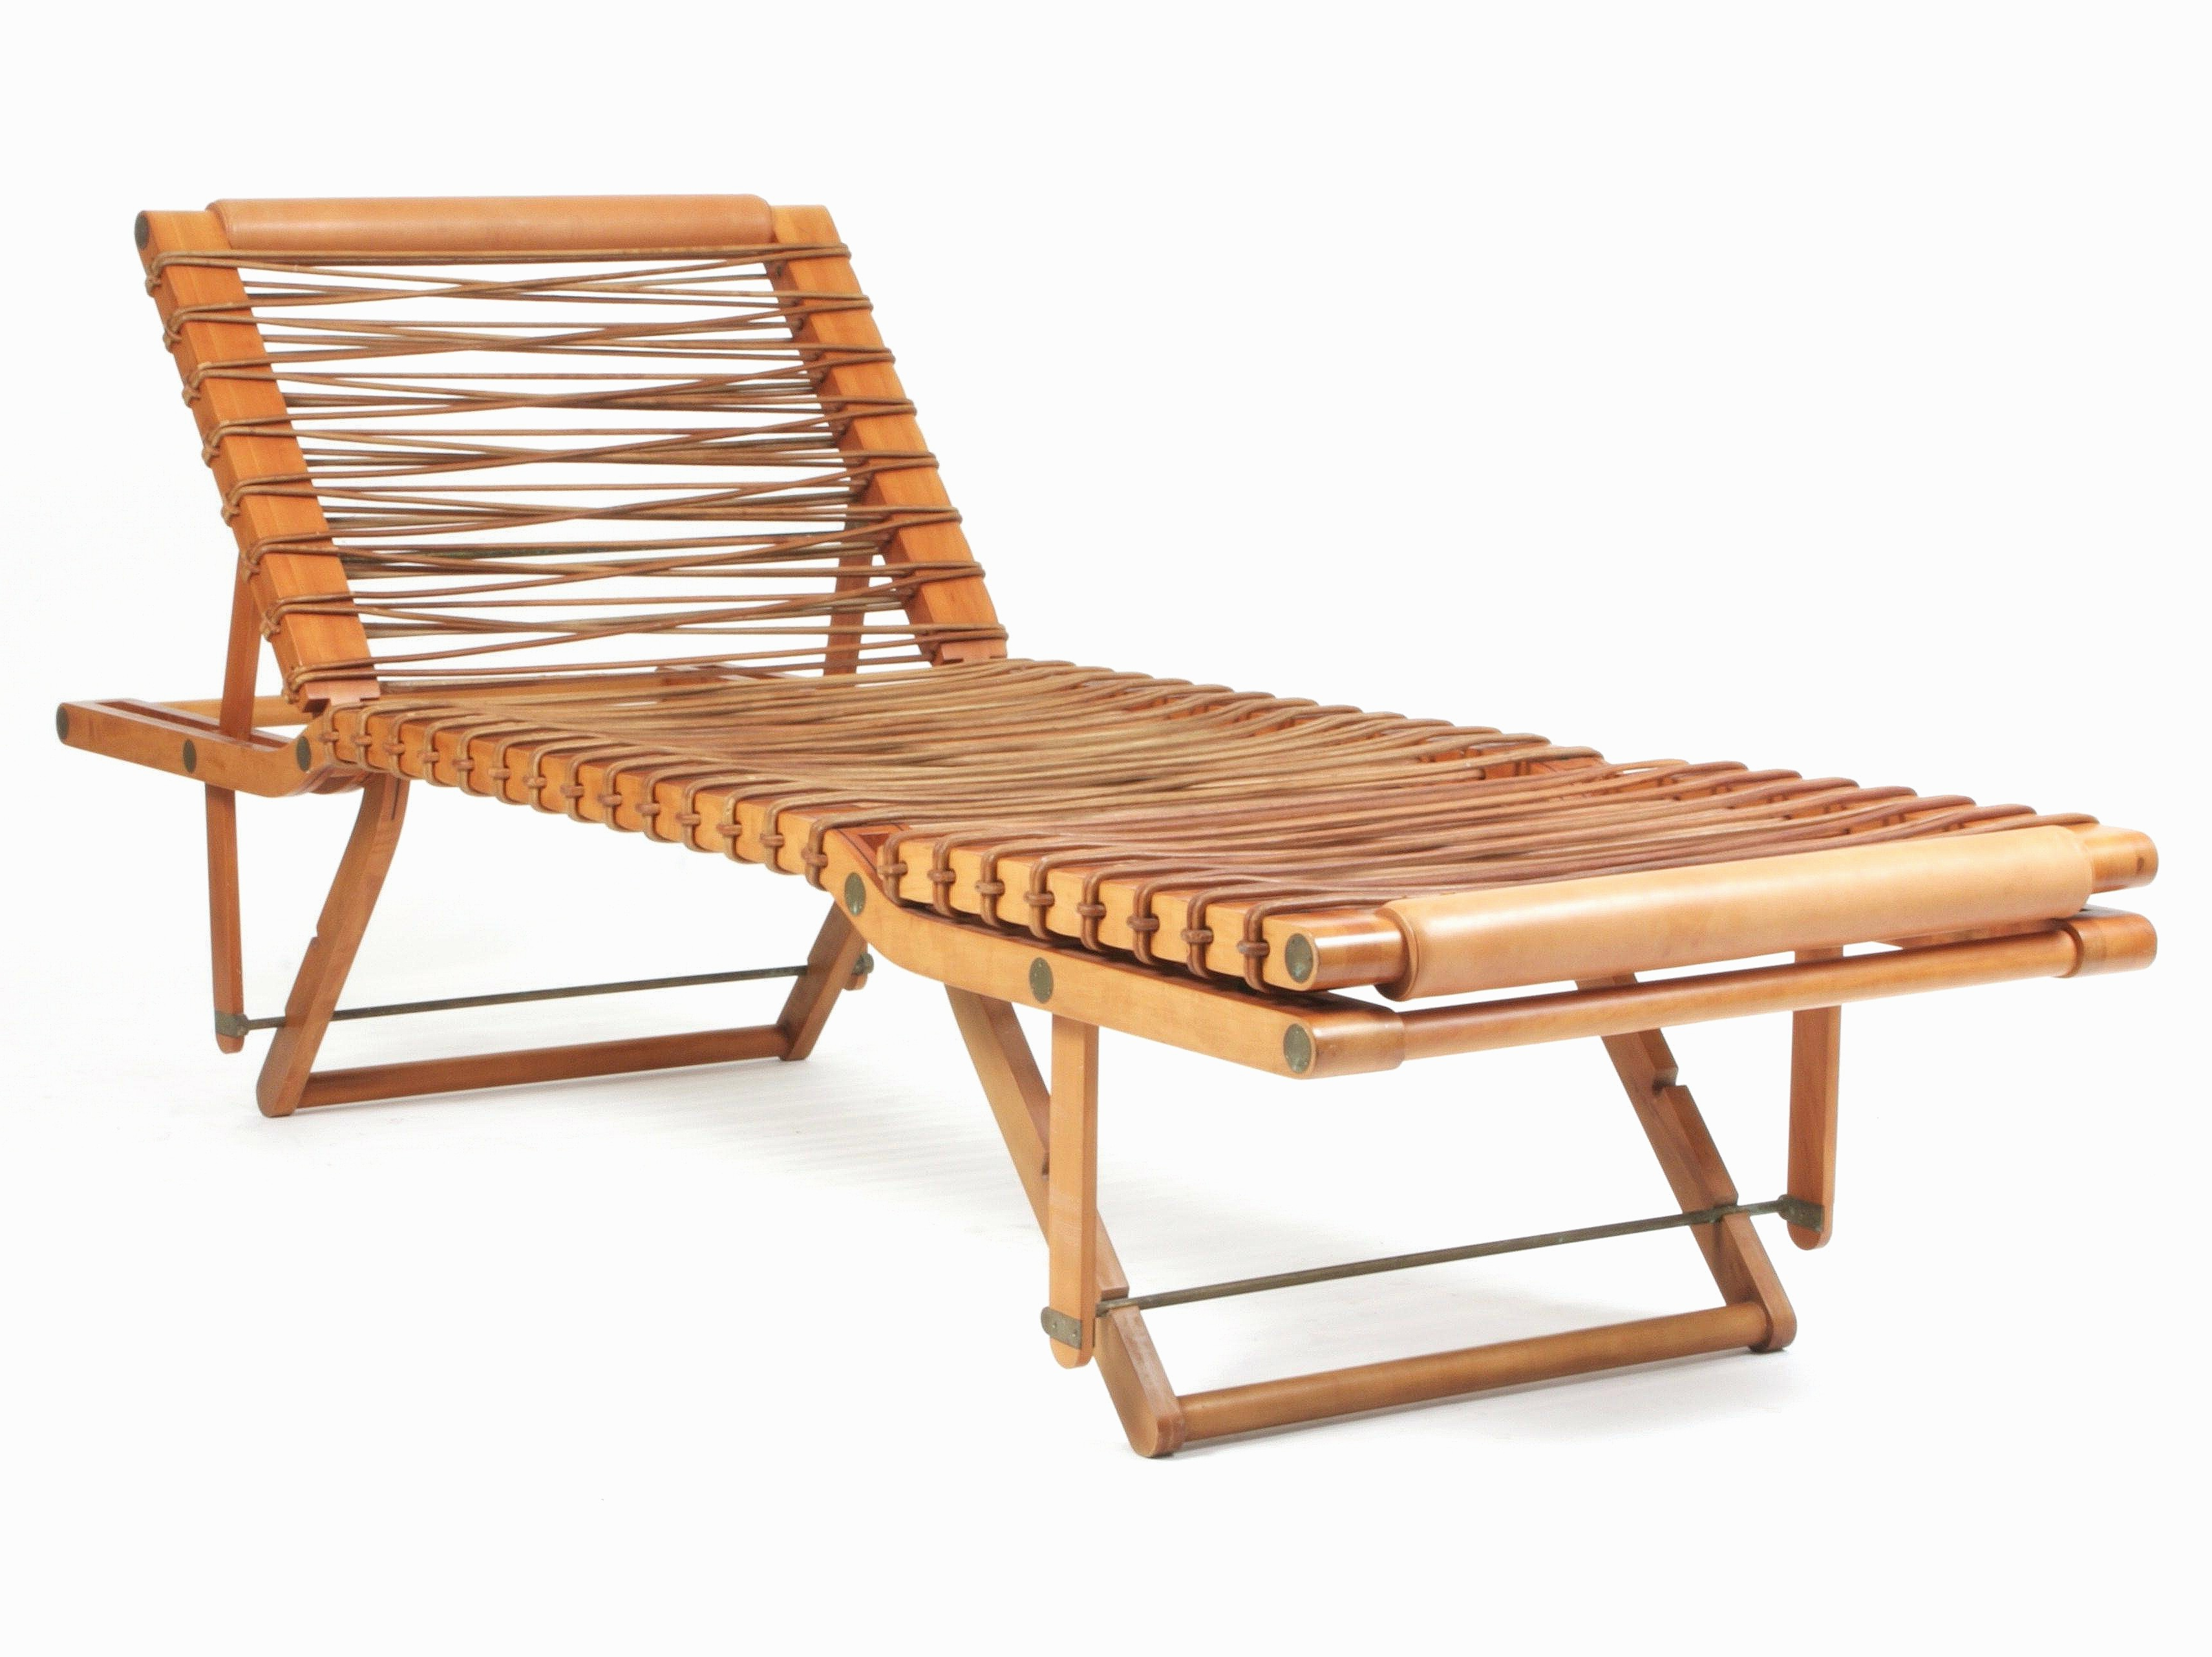 Widely Used Curved Folding Chaise Loungers In 52 Wood Chaise Lounge, Ana White $35 Wood Chaise Lounges Diy (View 24 of 25)